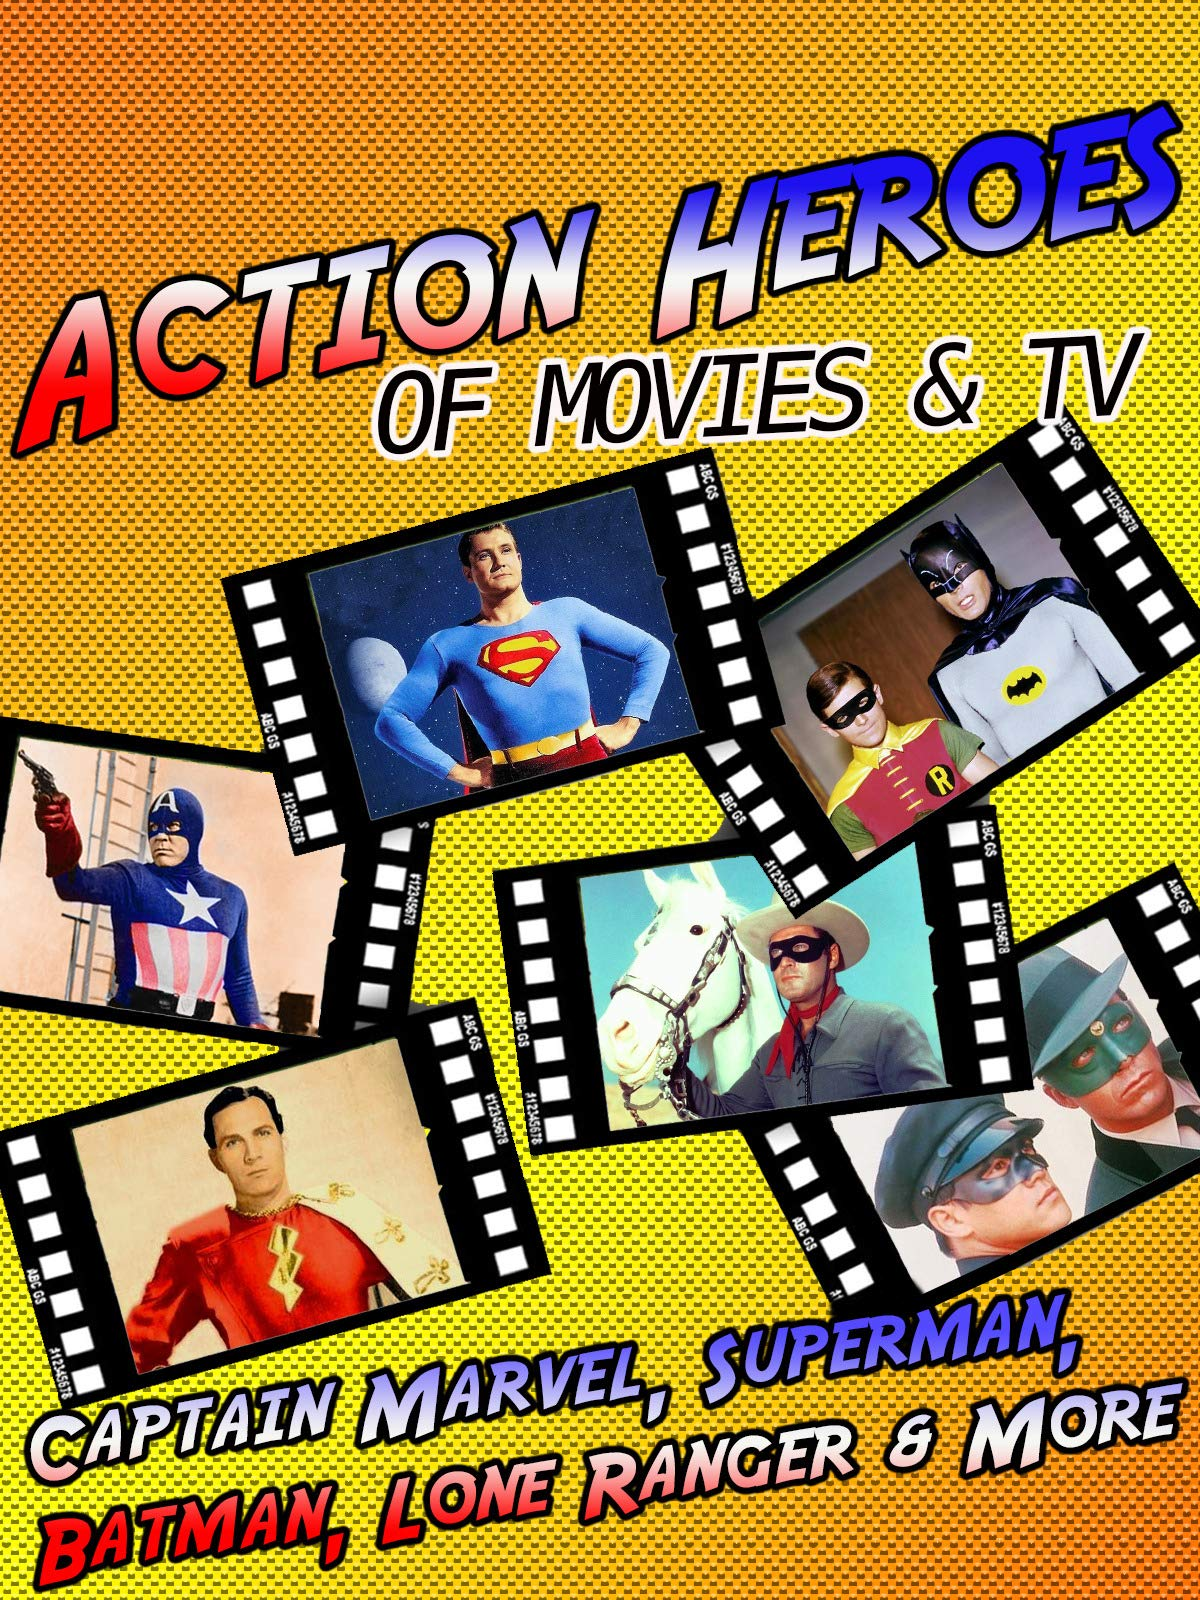 Action Heroes of Movies & TV - Captain Marvel, Superman, Batman, Lone Ranger & More on Amazon Prime Video UK